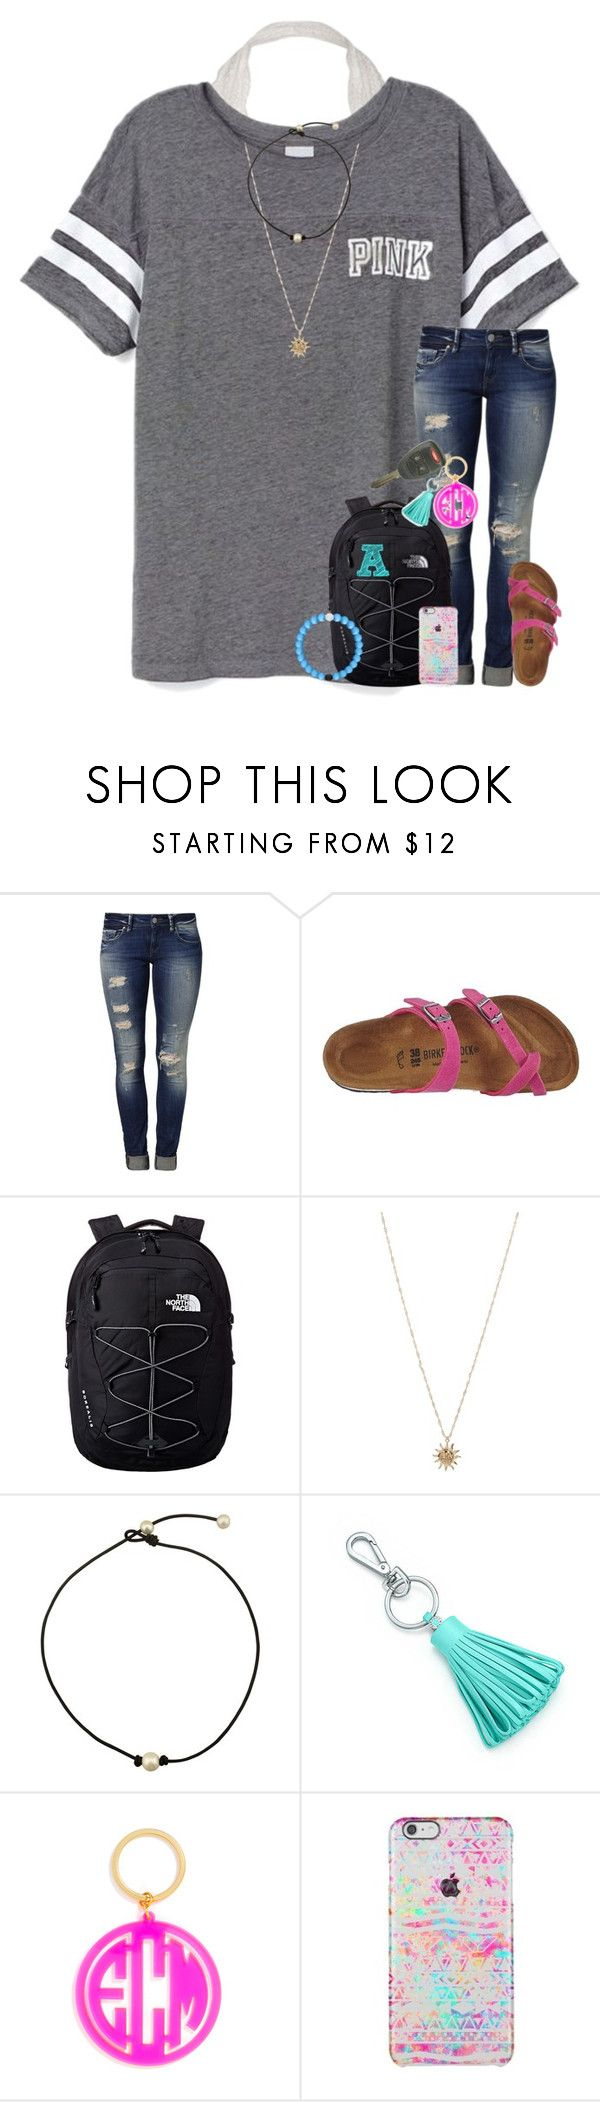 """""""Jeep Contest ends tomorrow night."""" by abbypj ❤ liked on Polyvore featuring Victoria's Secret, Mavi, Birkenstock, The North Face, ASOS, Tiffany & Co. and BaubleBar"""